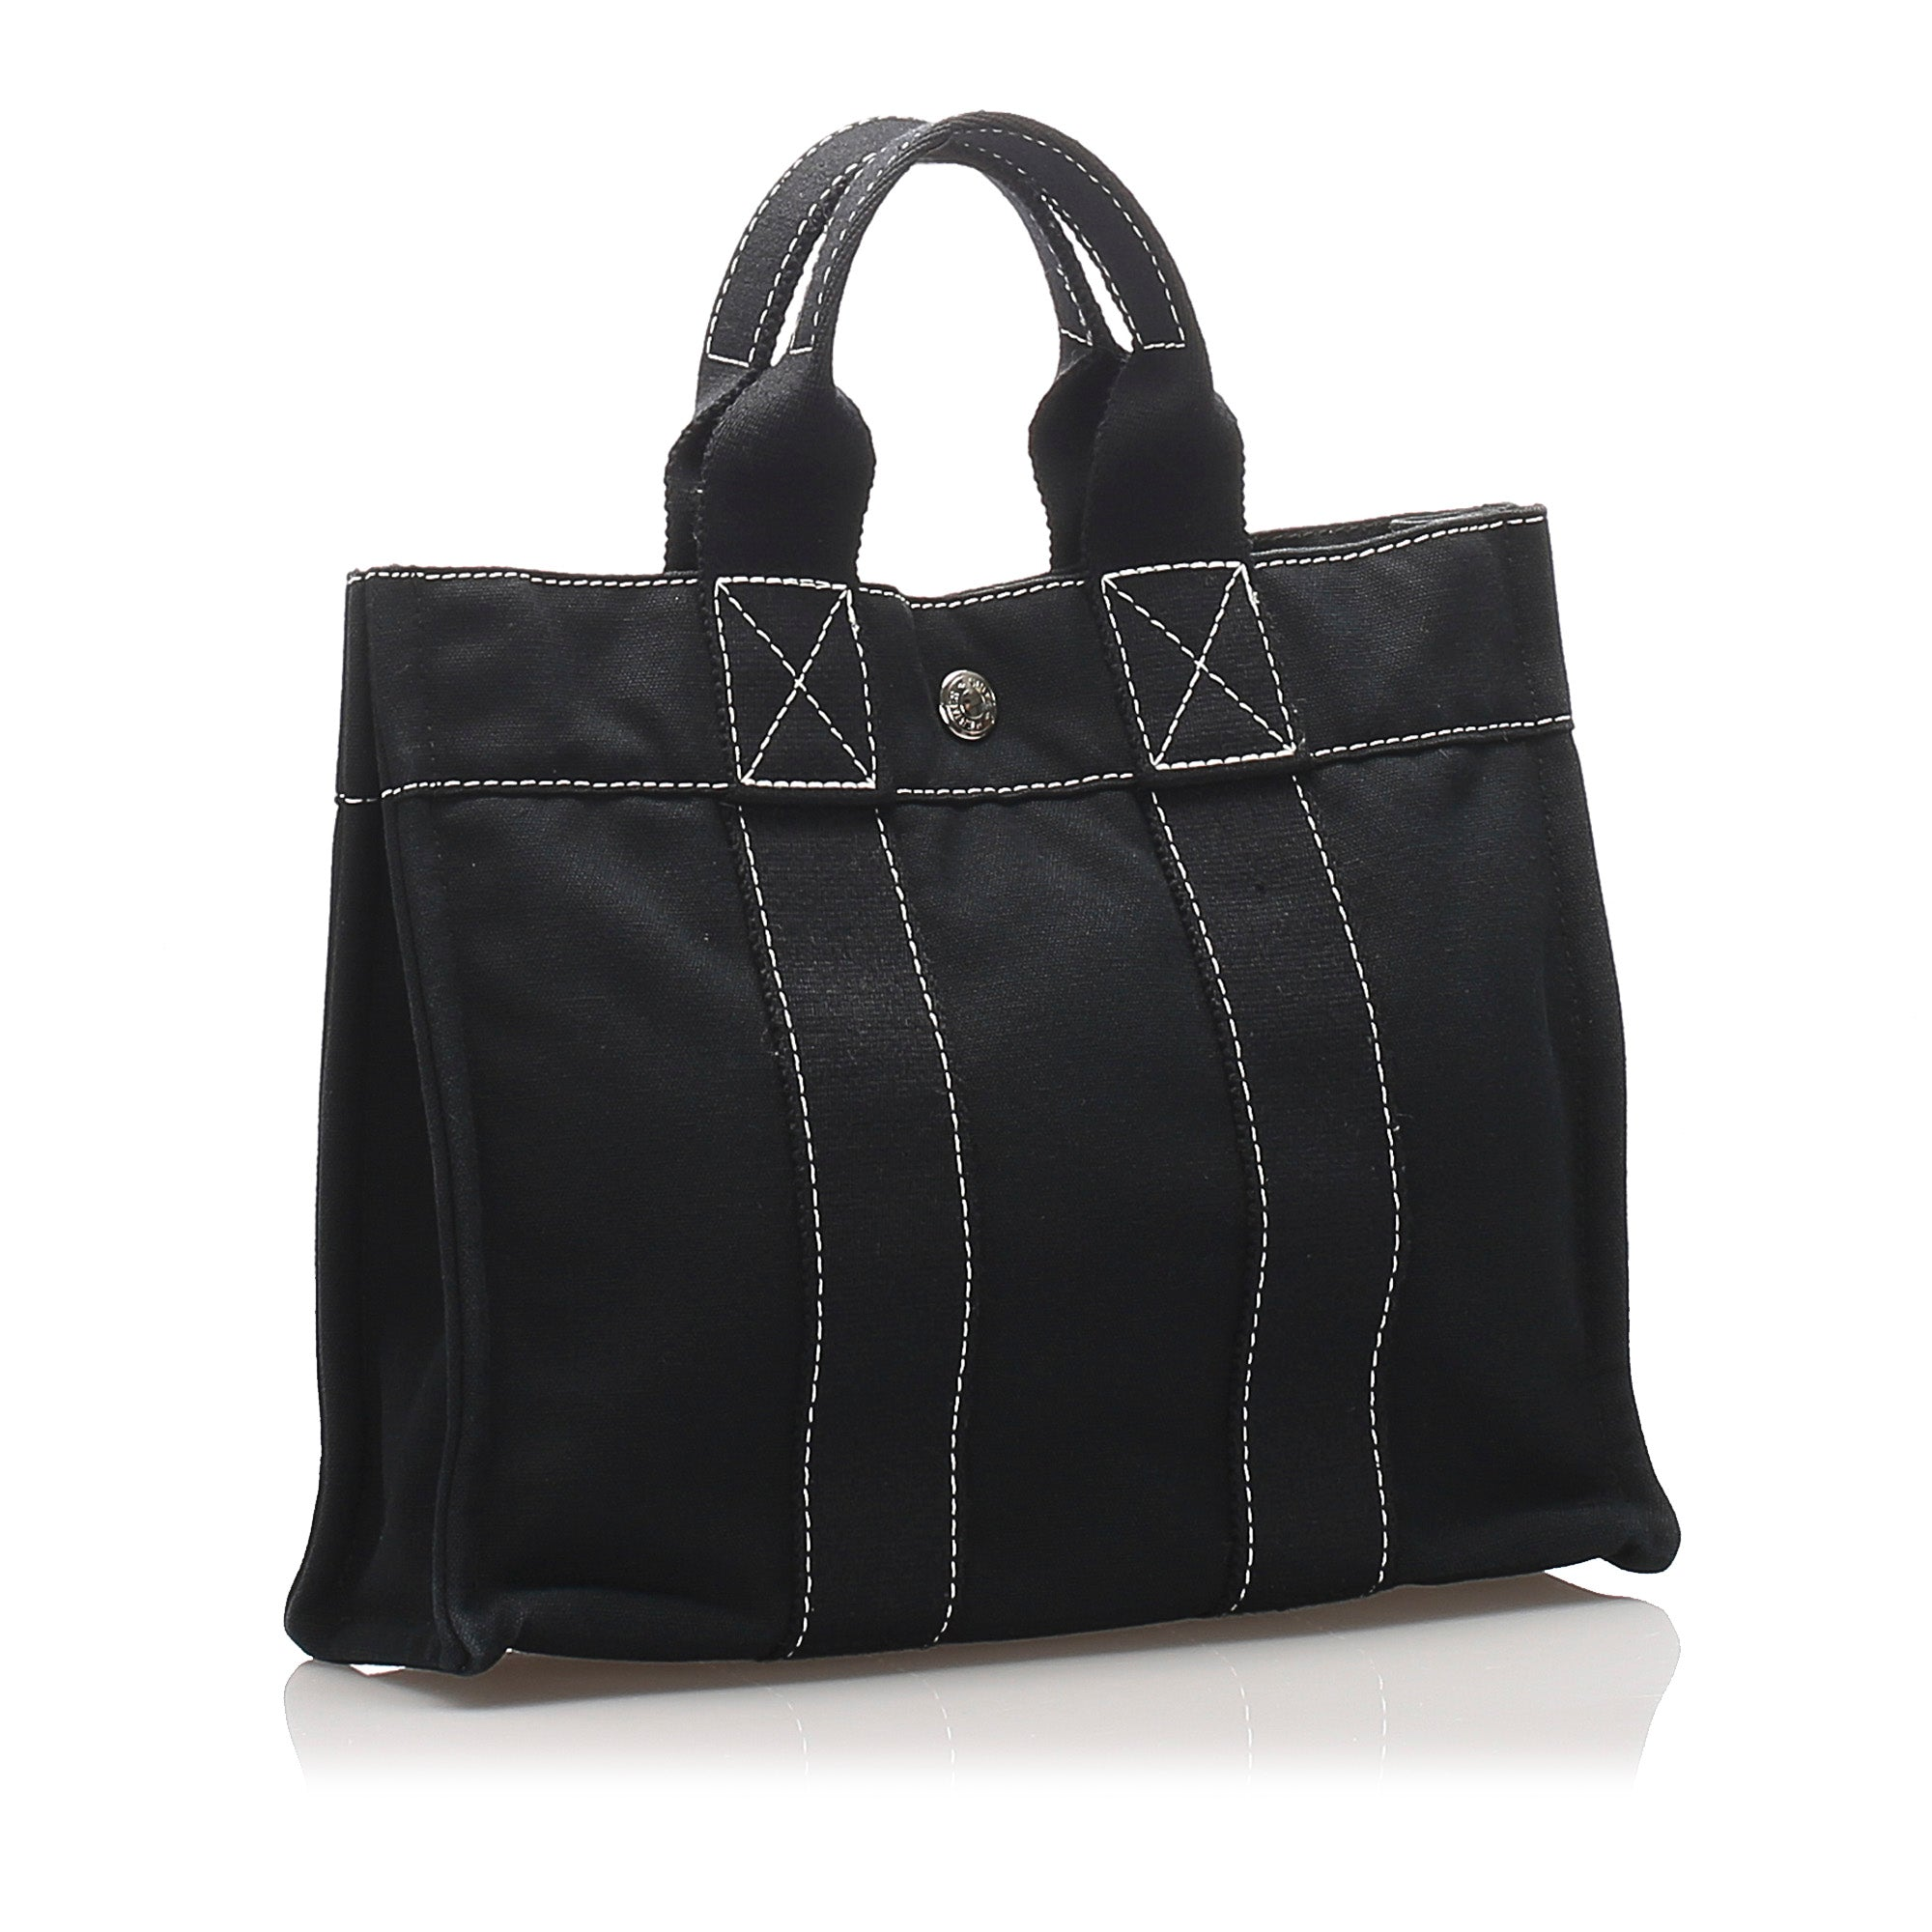 Hermes Black Sac Deauville PM